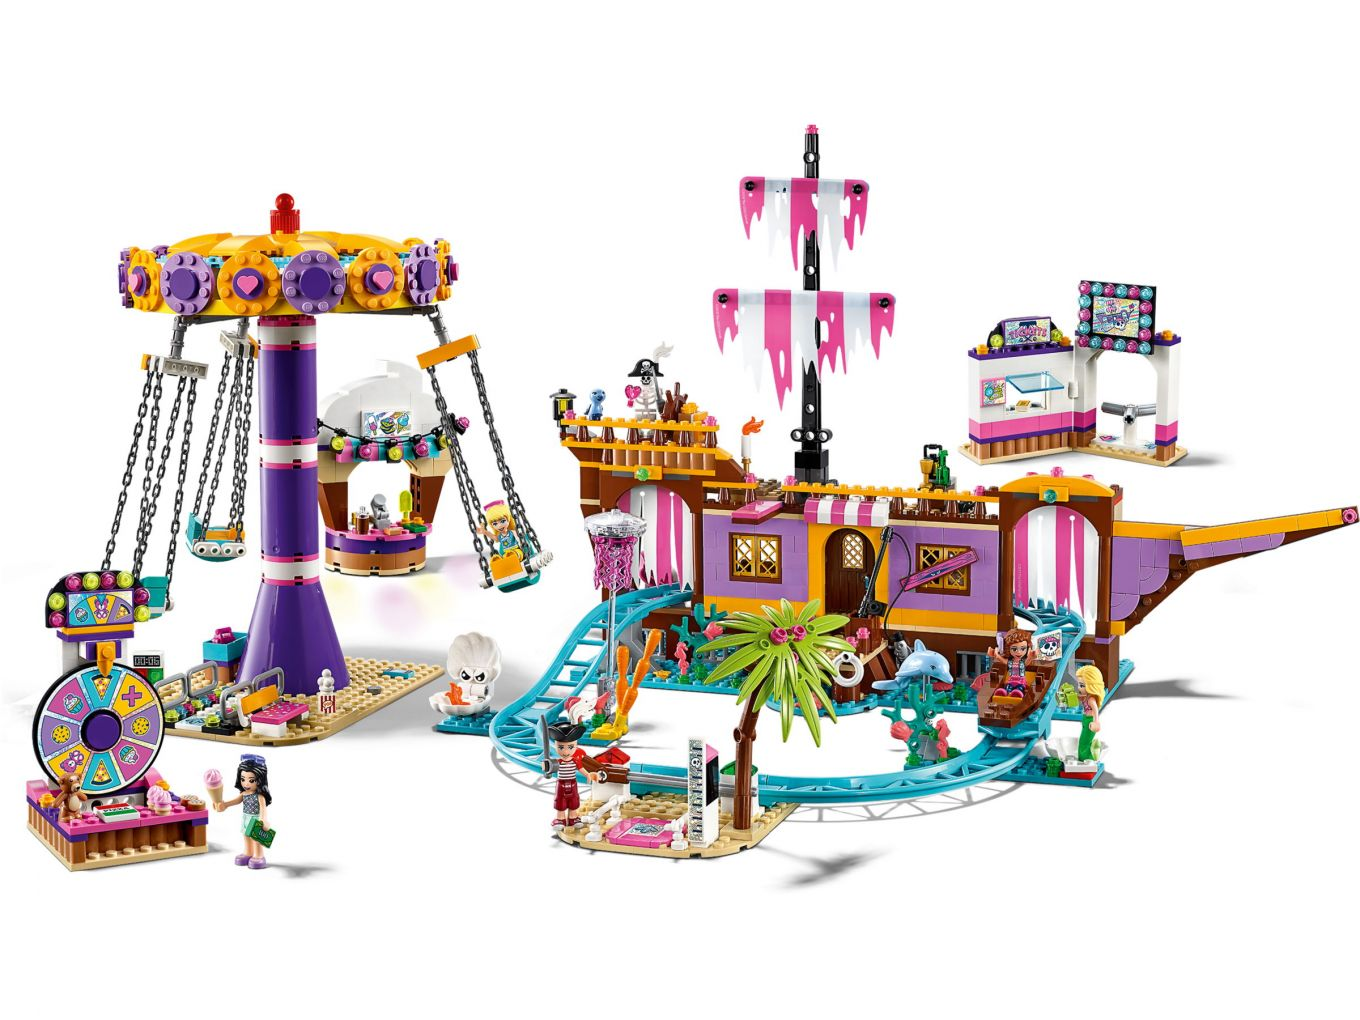 lego-friends-heartlake-city-fairground-pier-41375-inhalt-2019 zusammengebaut.com